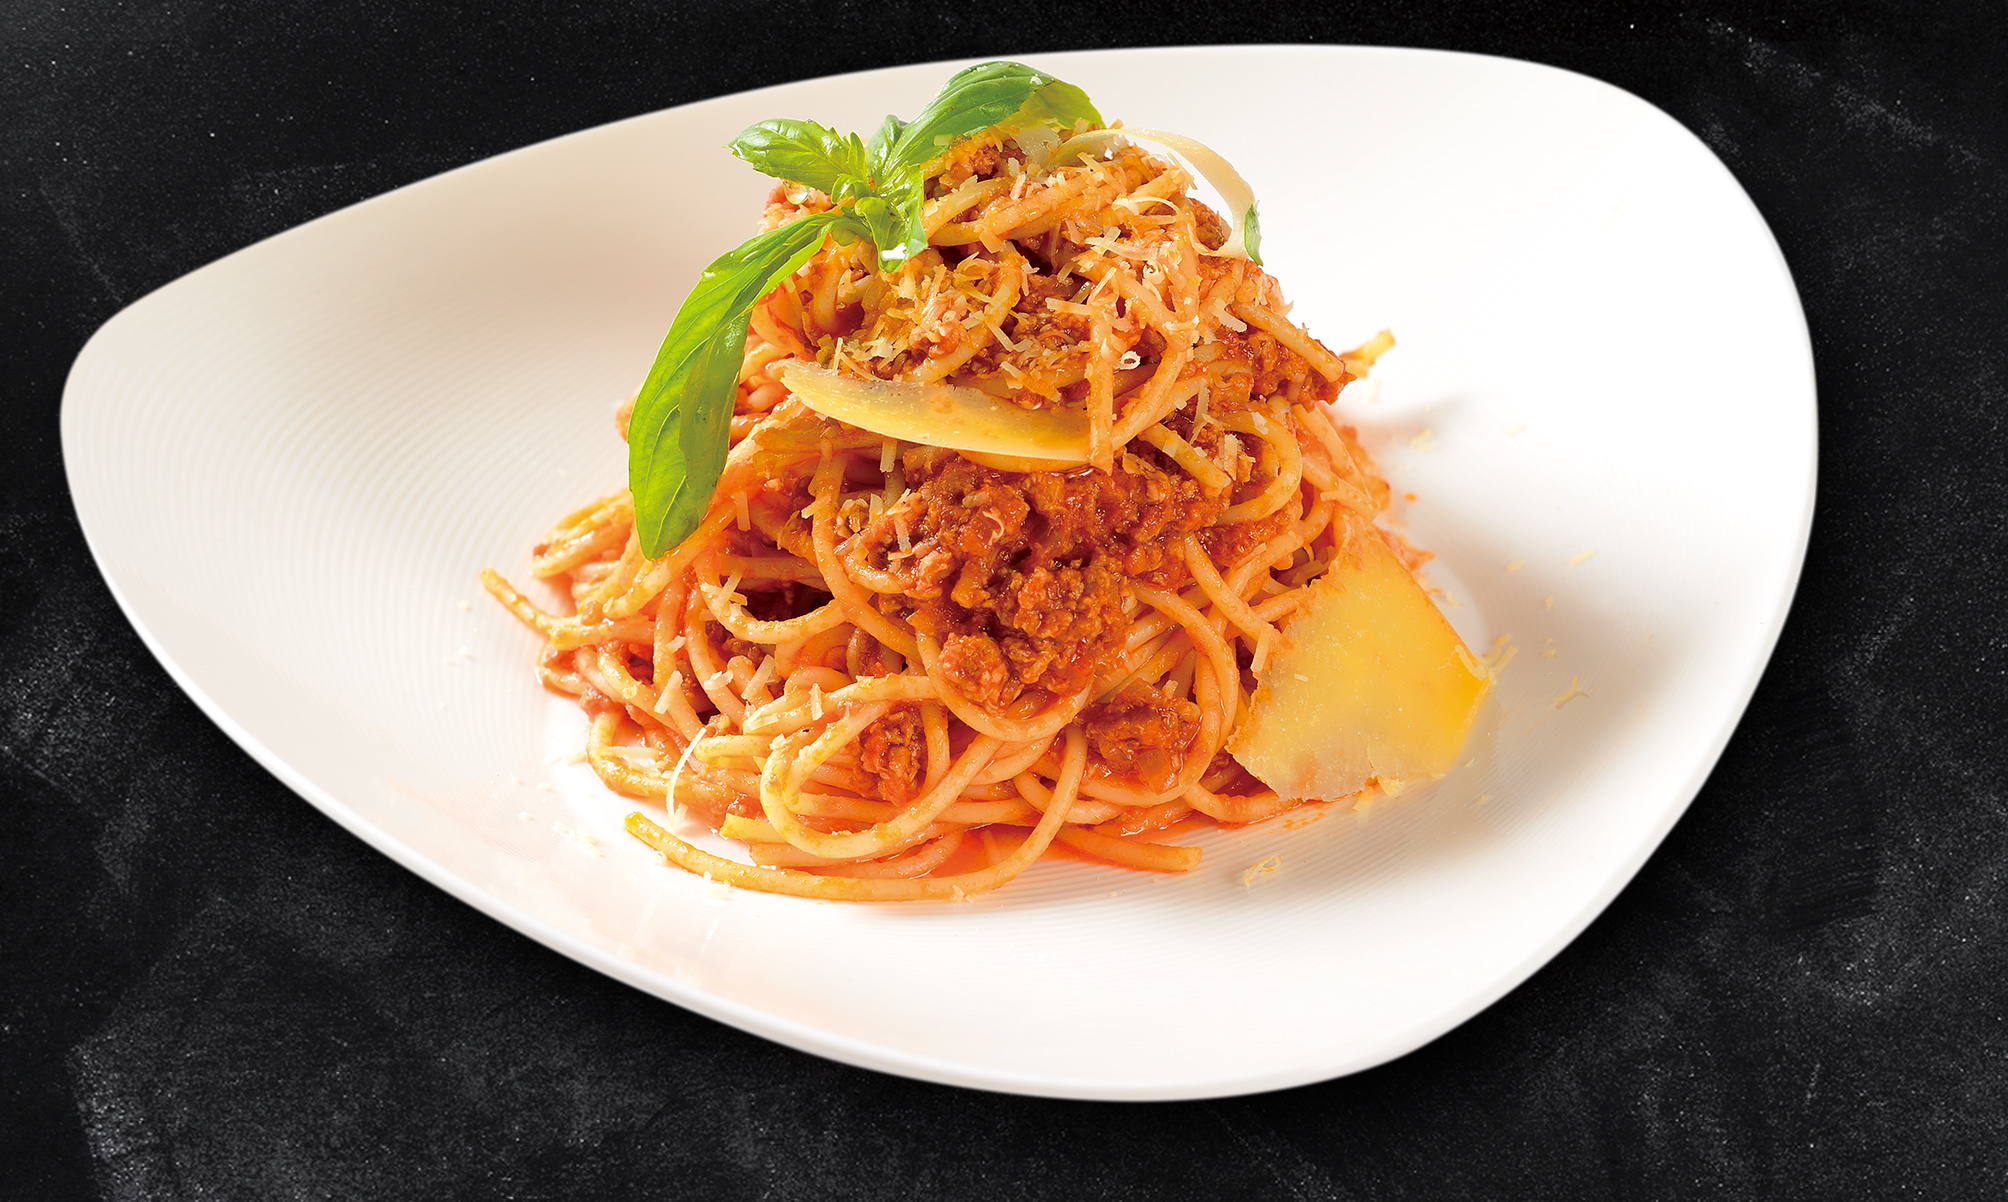 <b>Spaghetti Bolognese With Parmesan Cheese</b><br/>A Bologna Favorite! Spaghetti covered in a Tomato